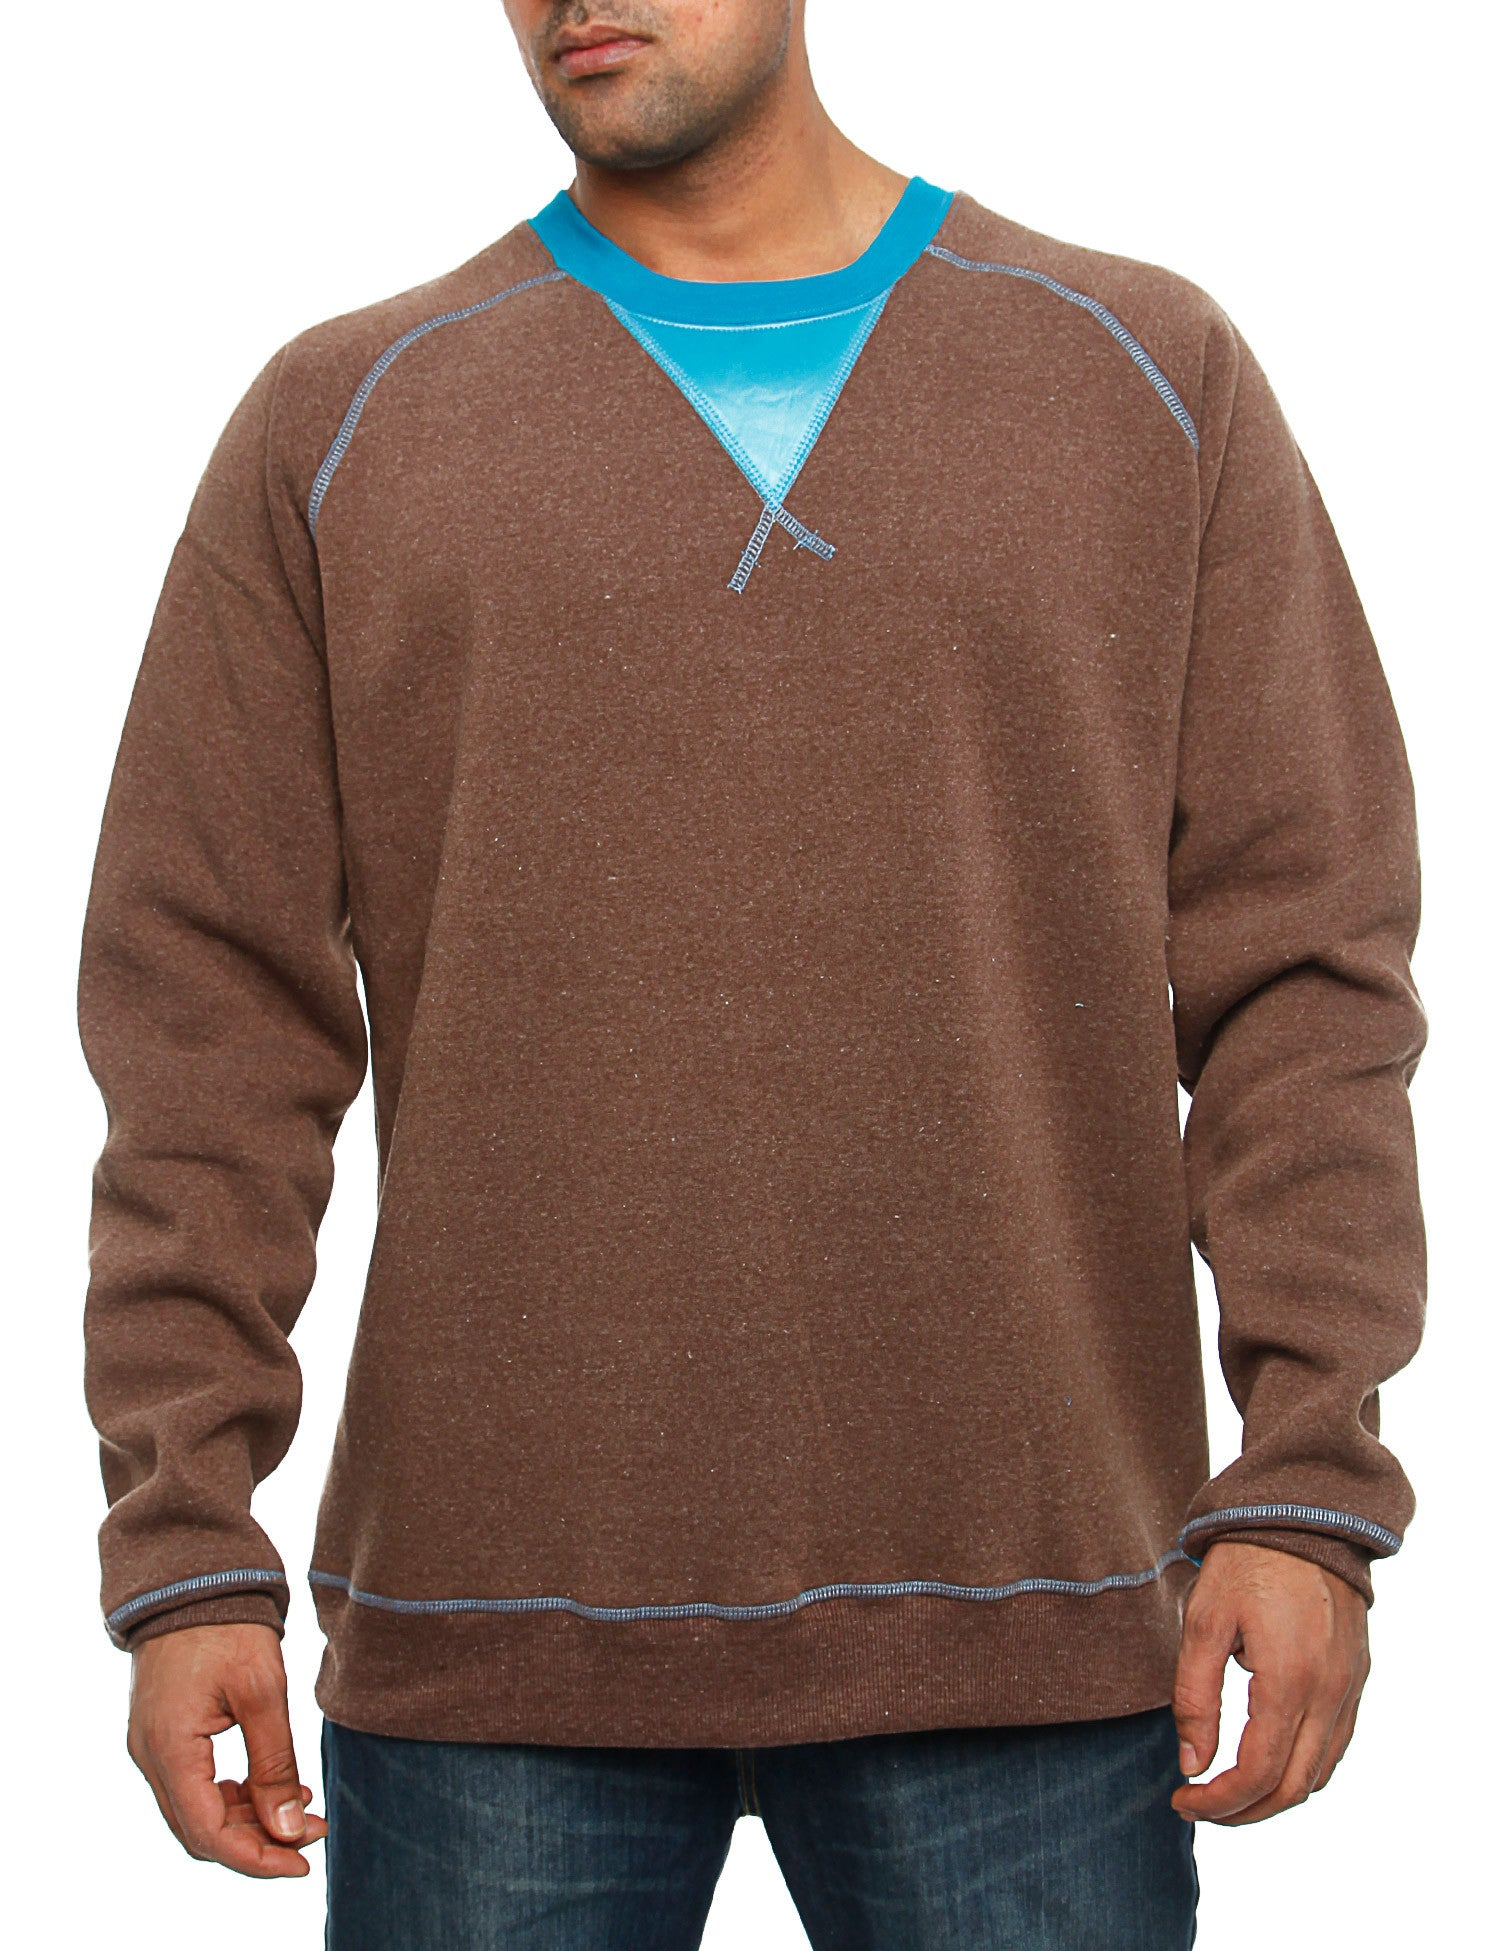 Royal Blue Crewneck 44012 Brown